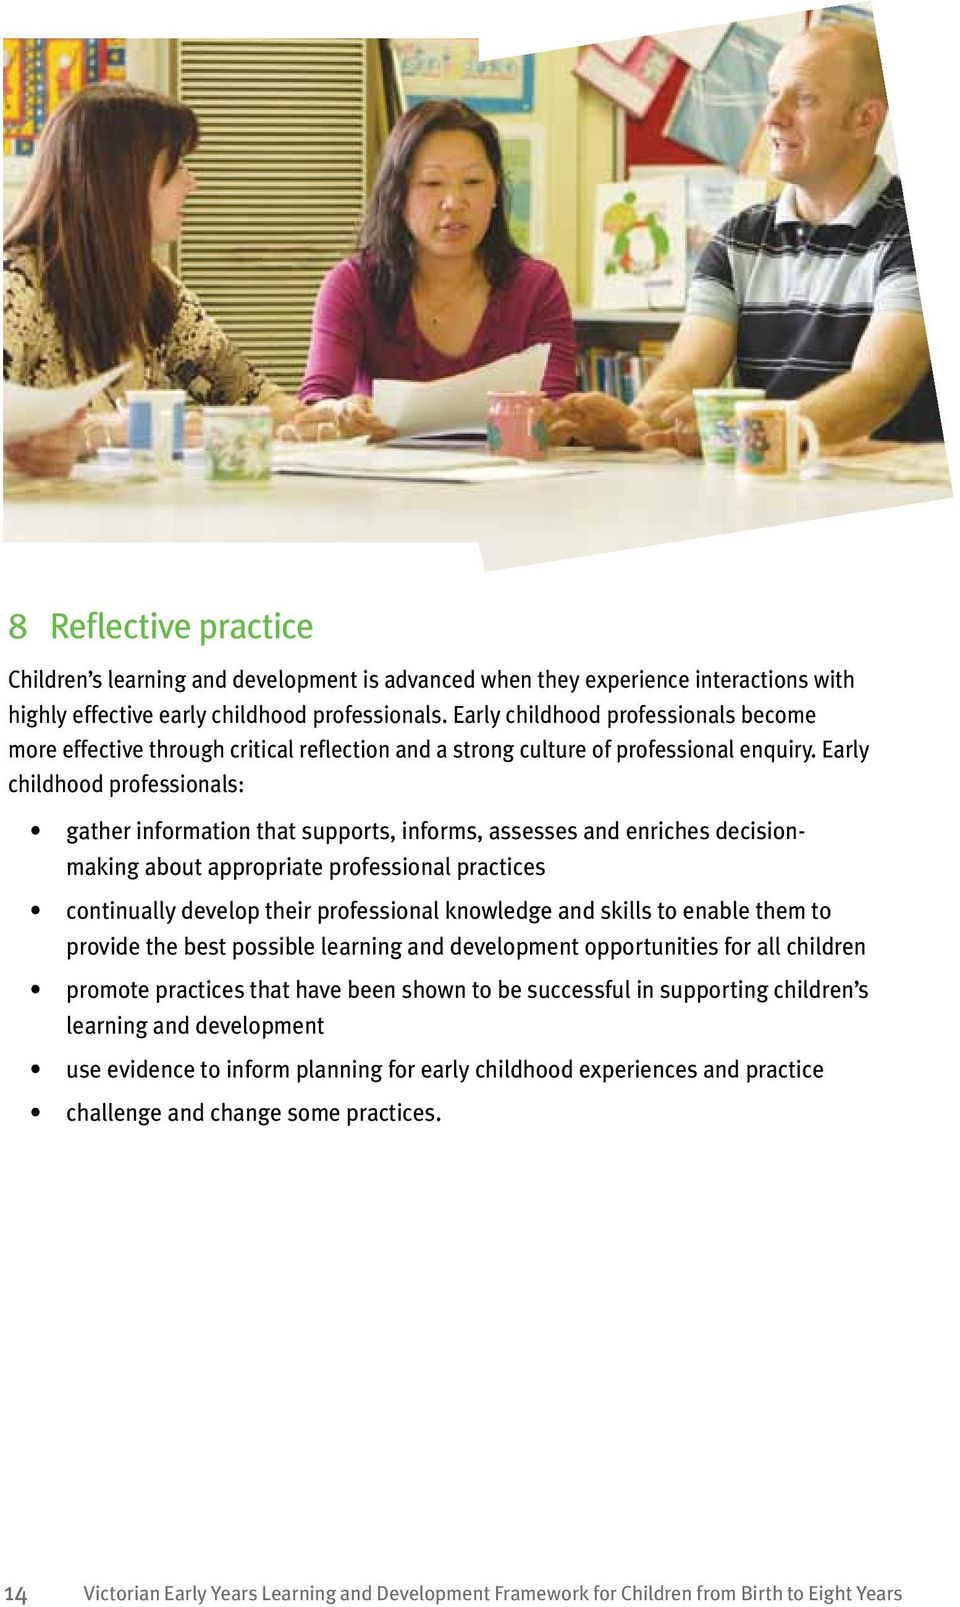 Early childhood professionals: gather information that supports, informs, assesses and enriches decisionmaking about appropriate professional practices continually develop their professional